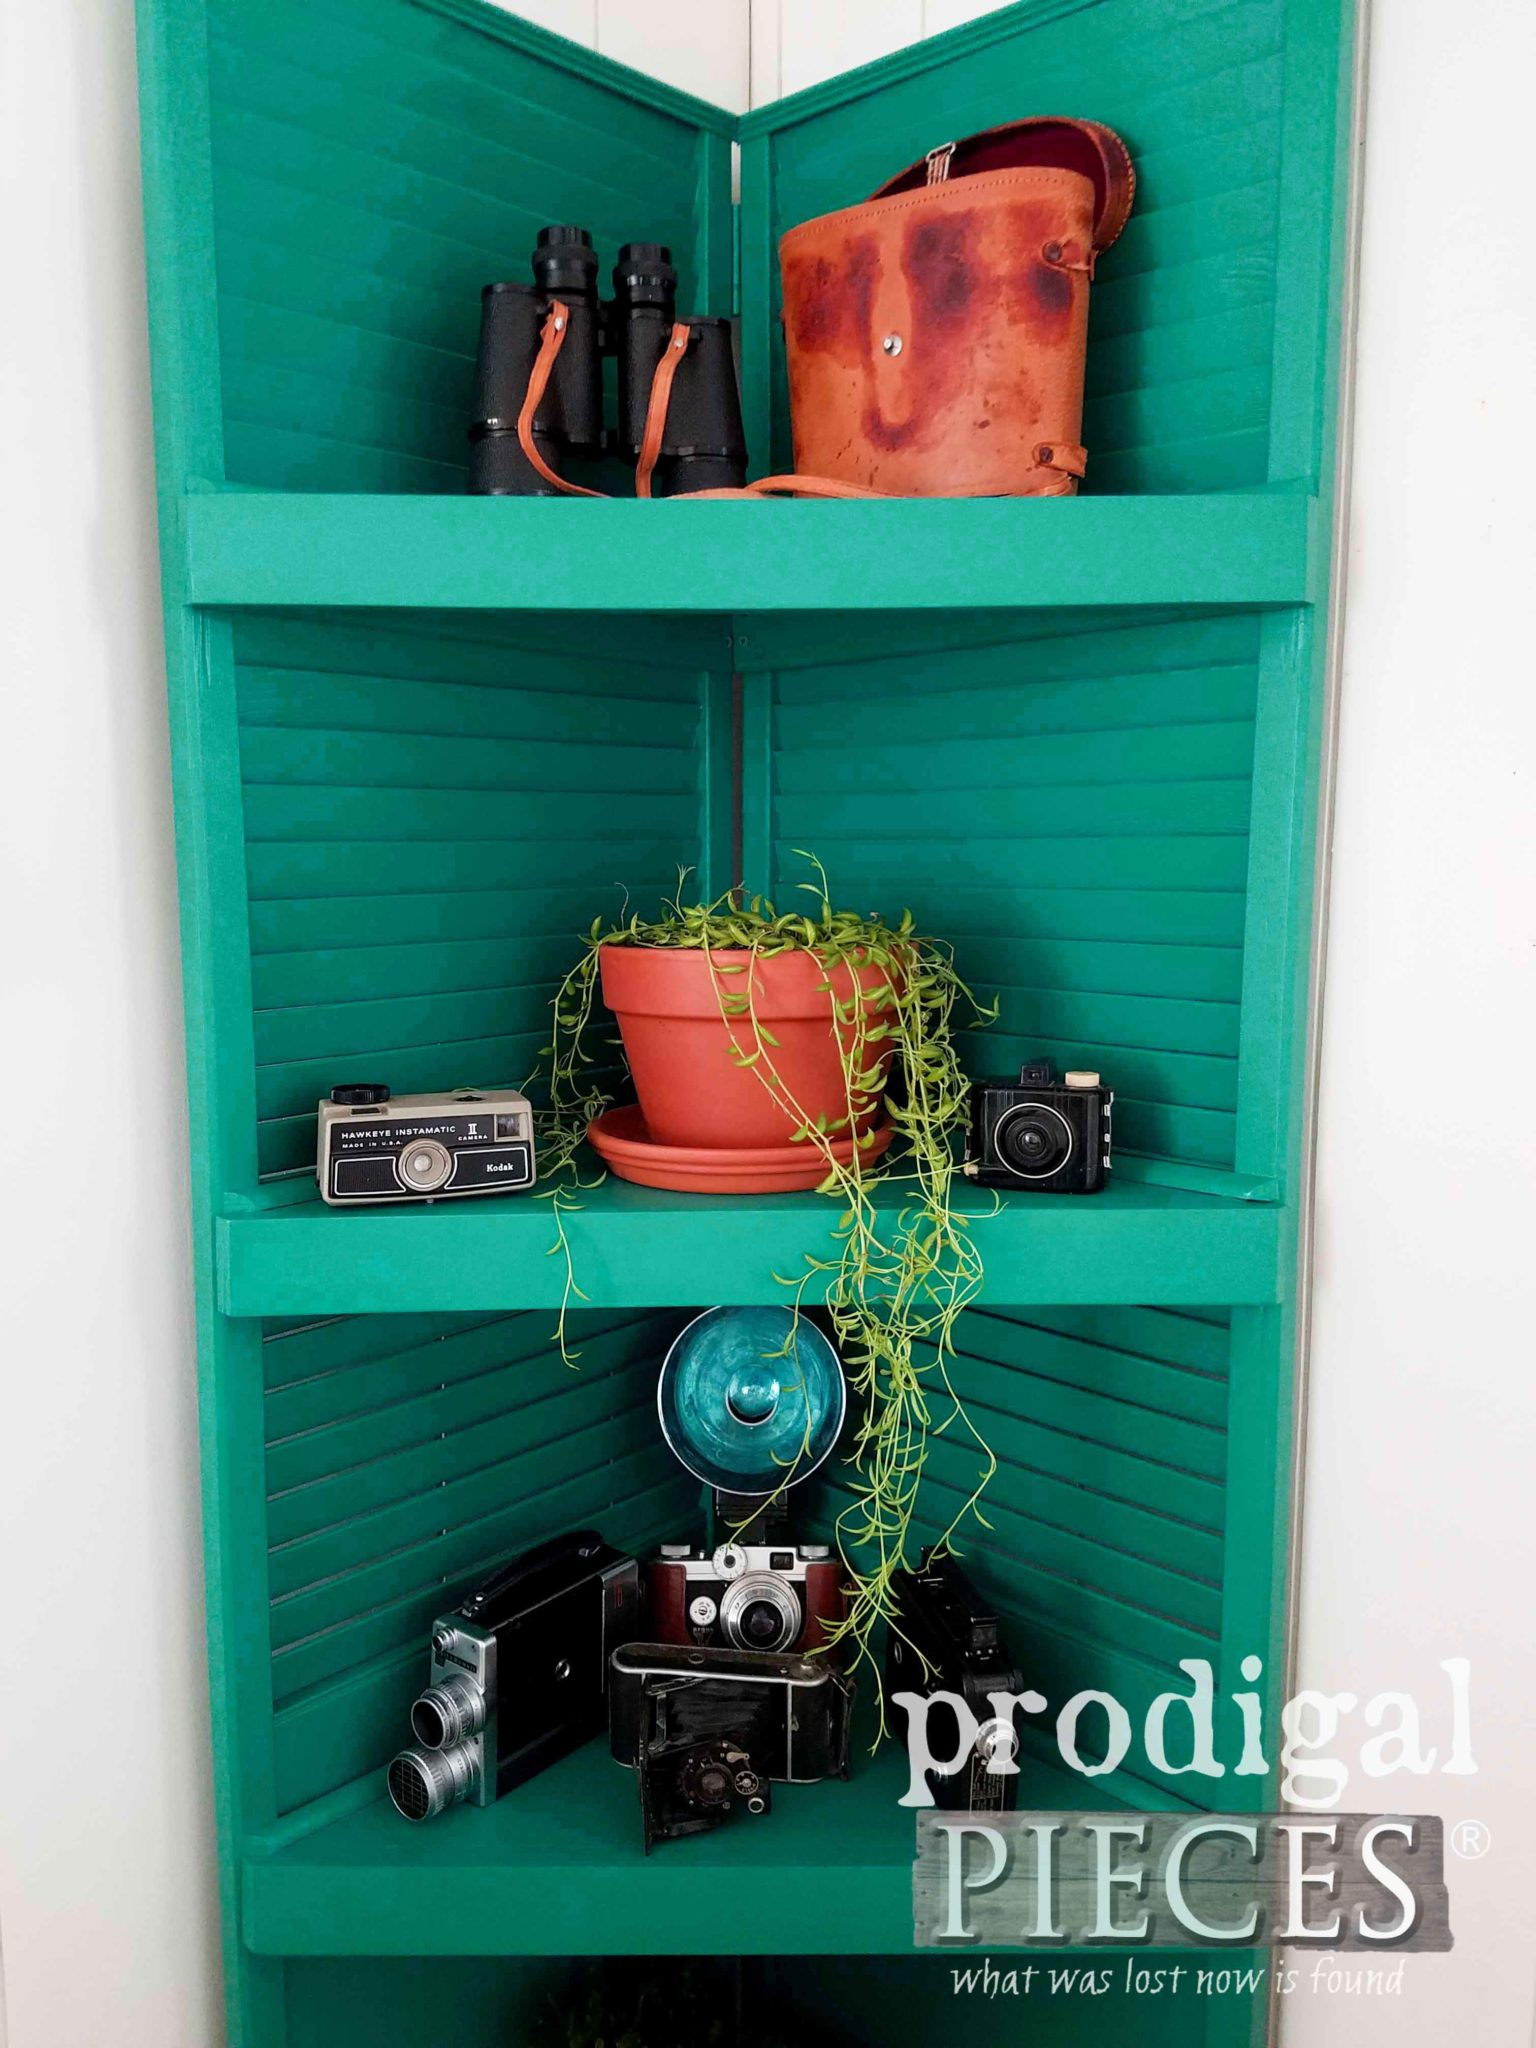 Teal Green Upcycled Louver Door Shelf with Boho Decor by Larissa of Prodigal Pieces | prodigalpieces.com